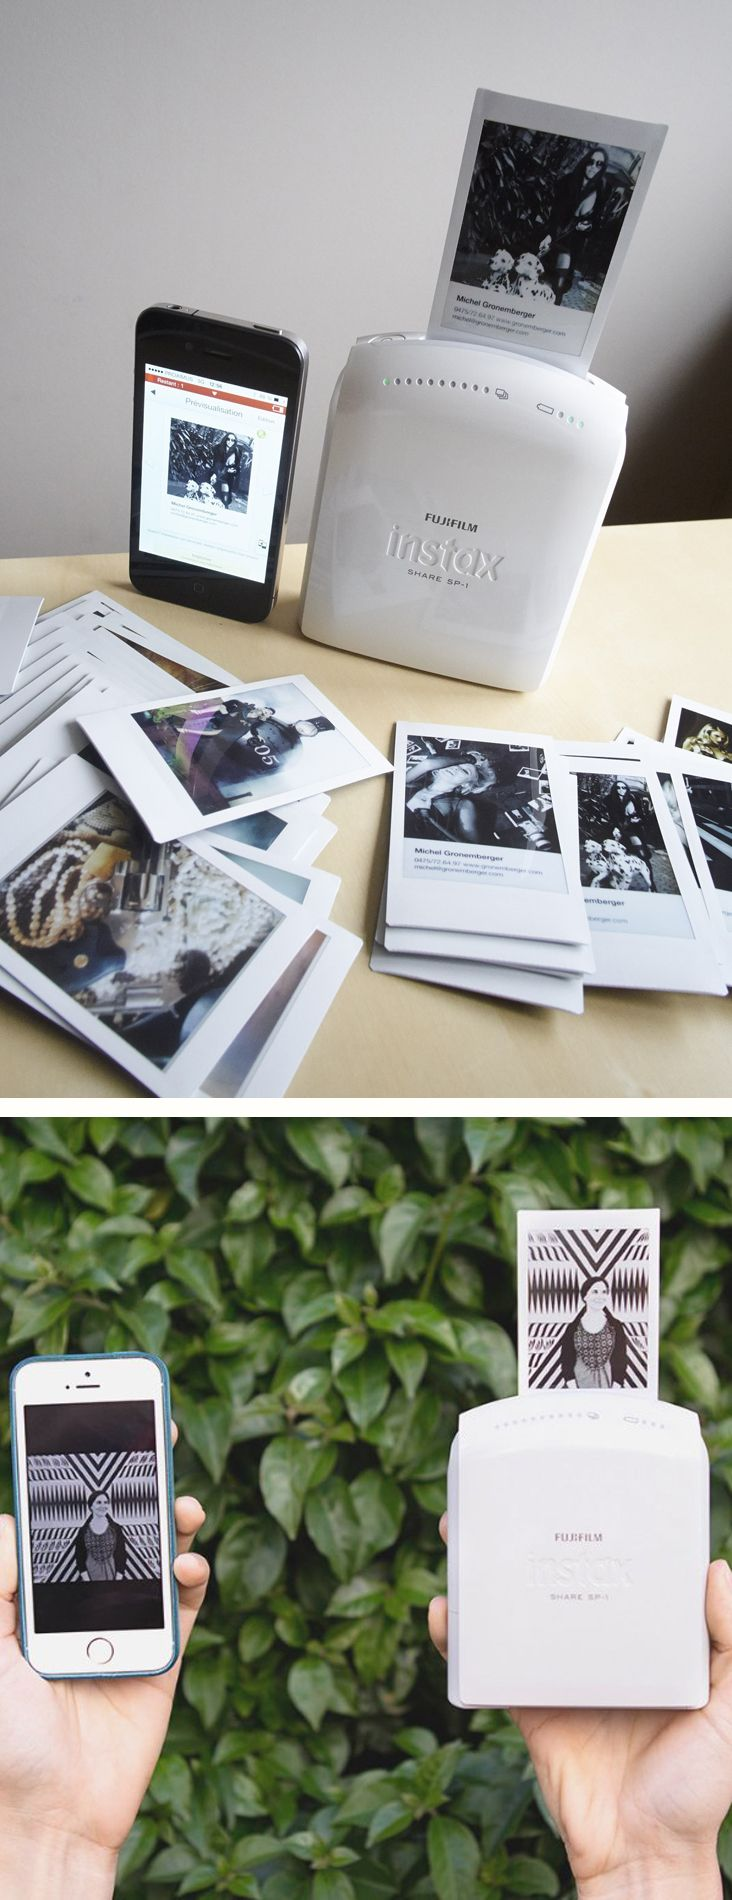 Print the pictures from your Smartphone the Polaroid style: Fujifilm Instax Share Smartphone Printer SP-1 - www.MyWonderList.com #smartphone #printer